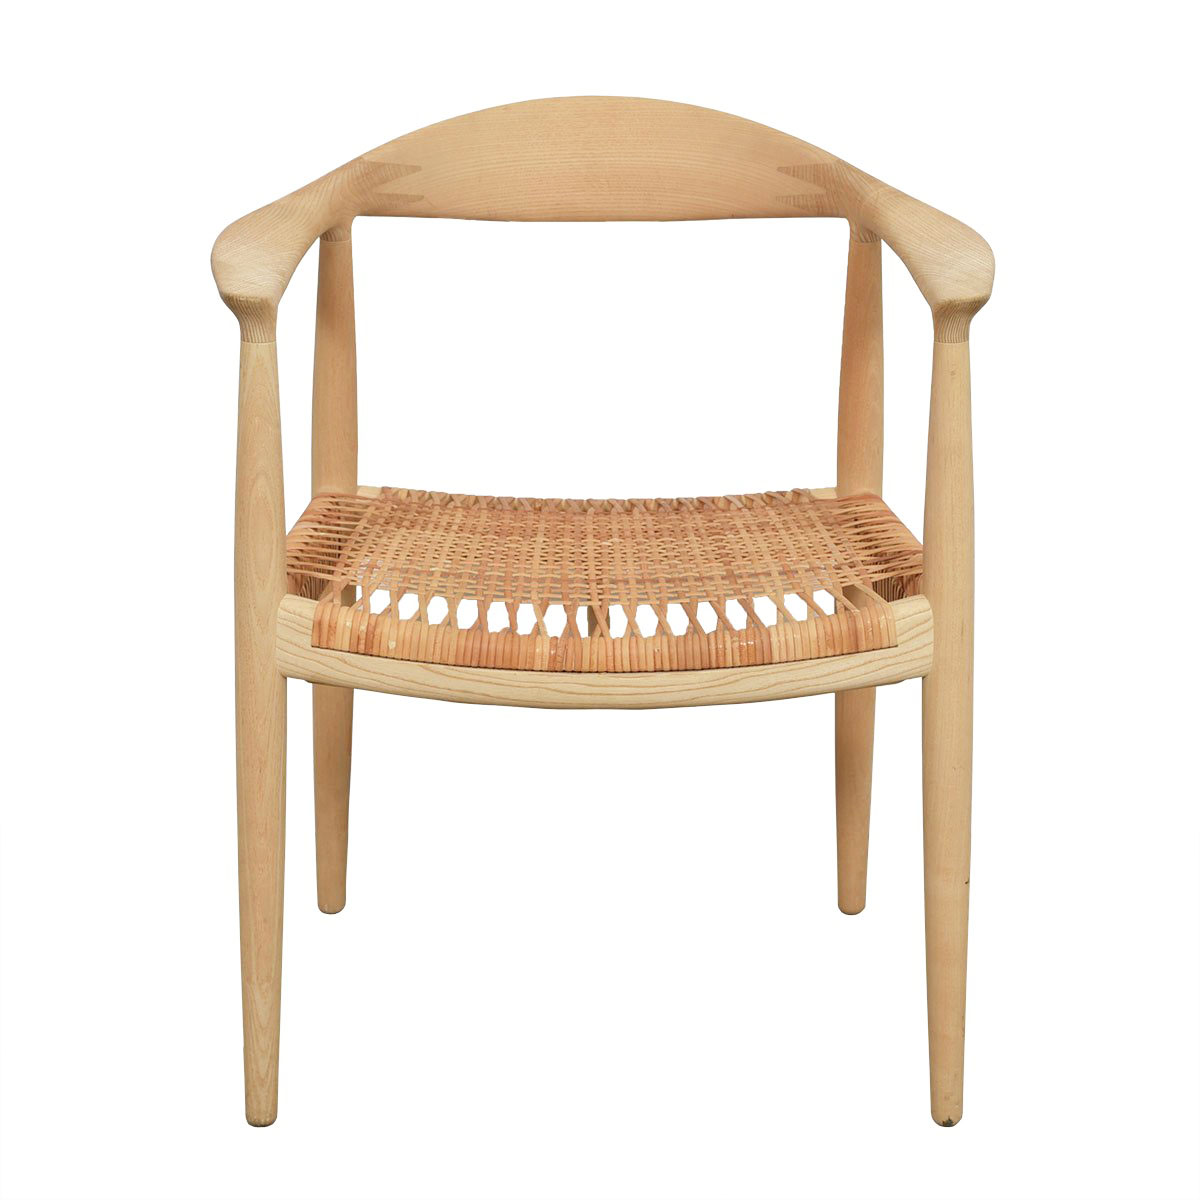 """The Chair"" by Hans Wegner Set of 8 by PP Mobler"